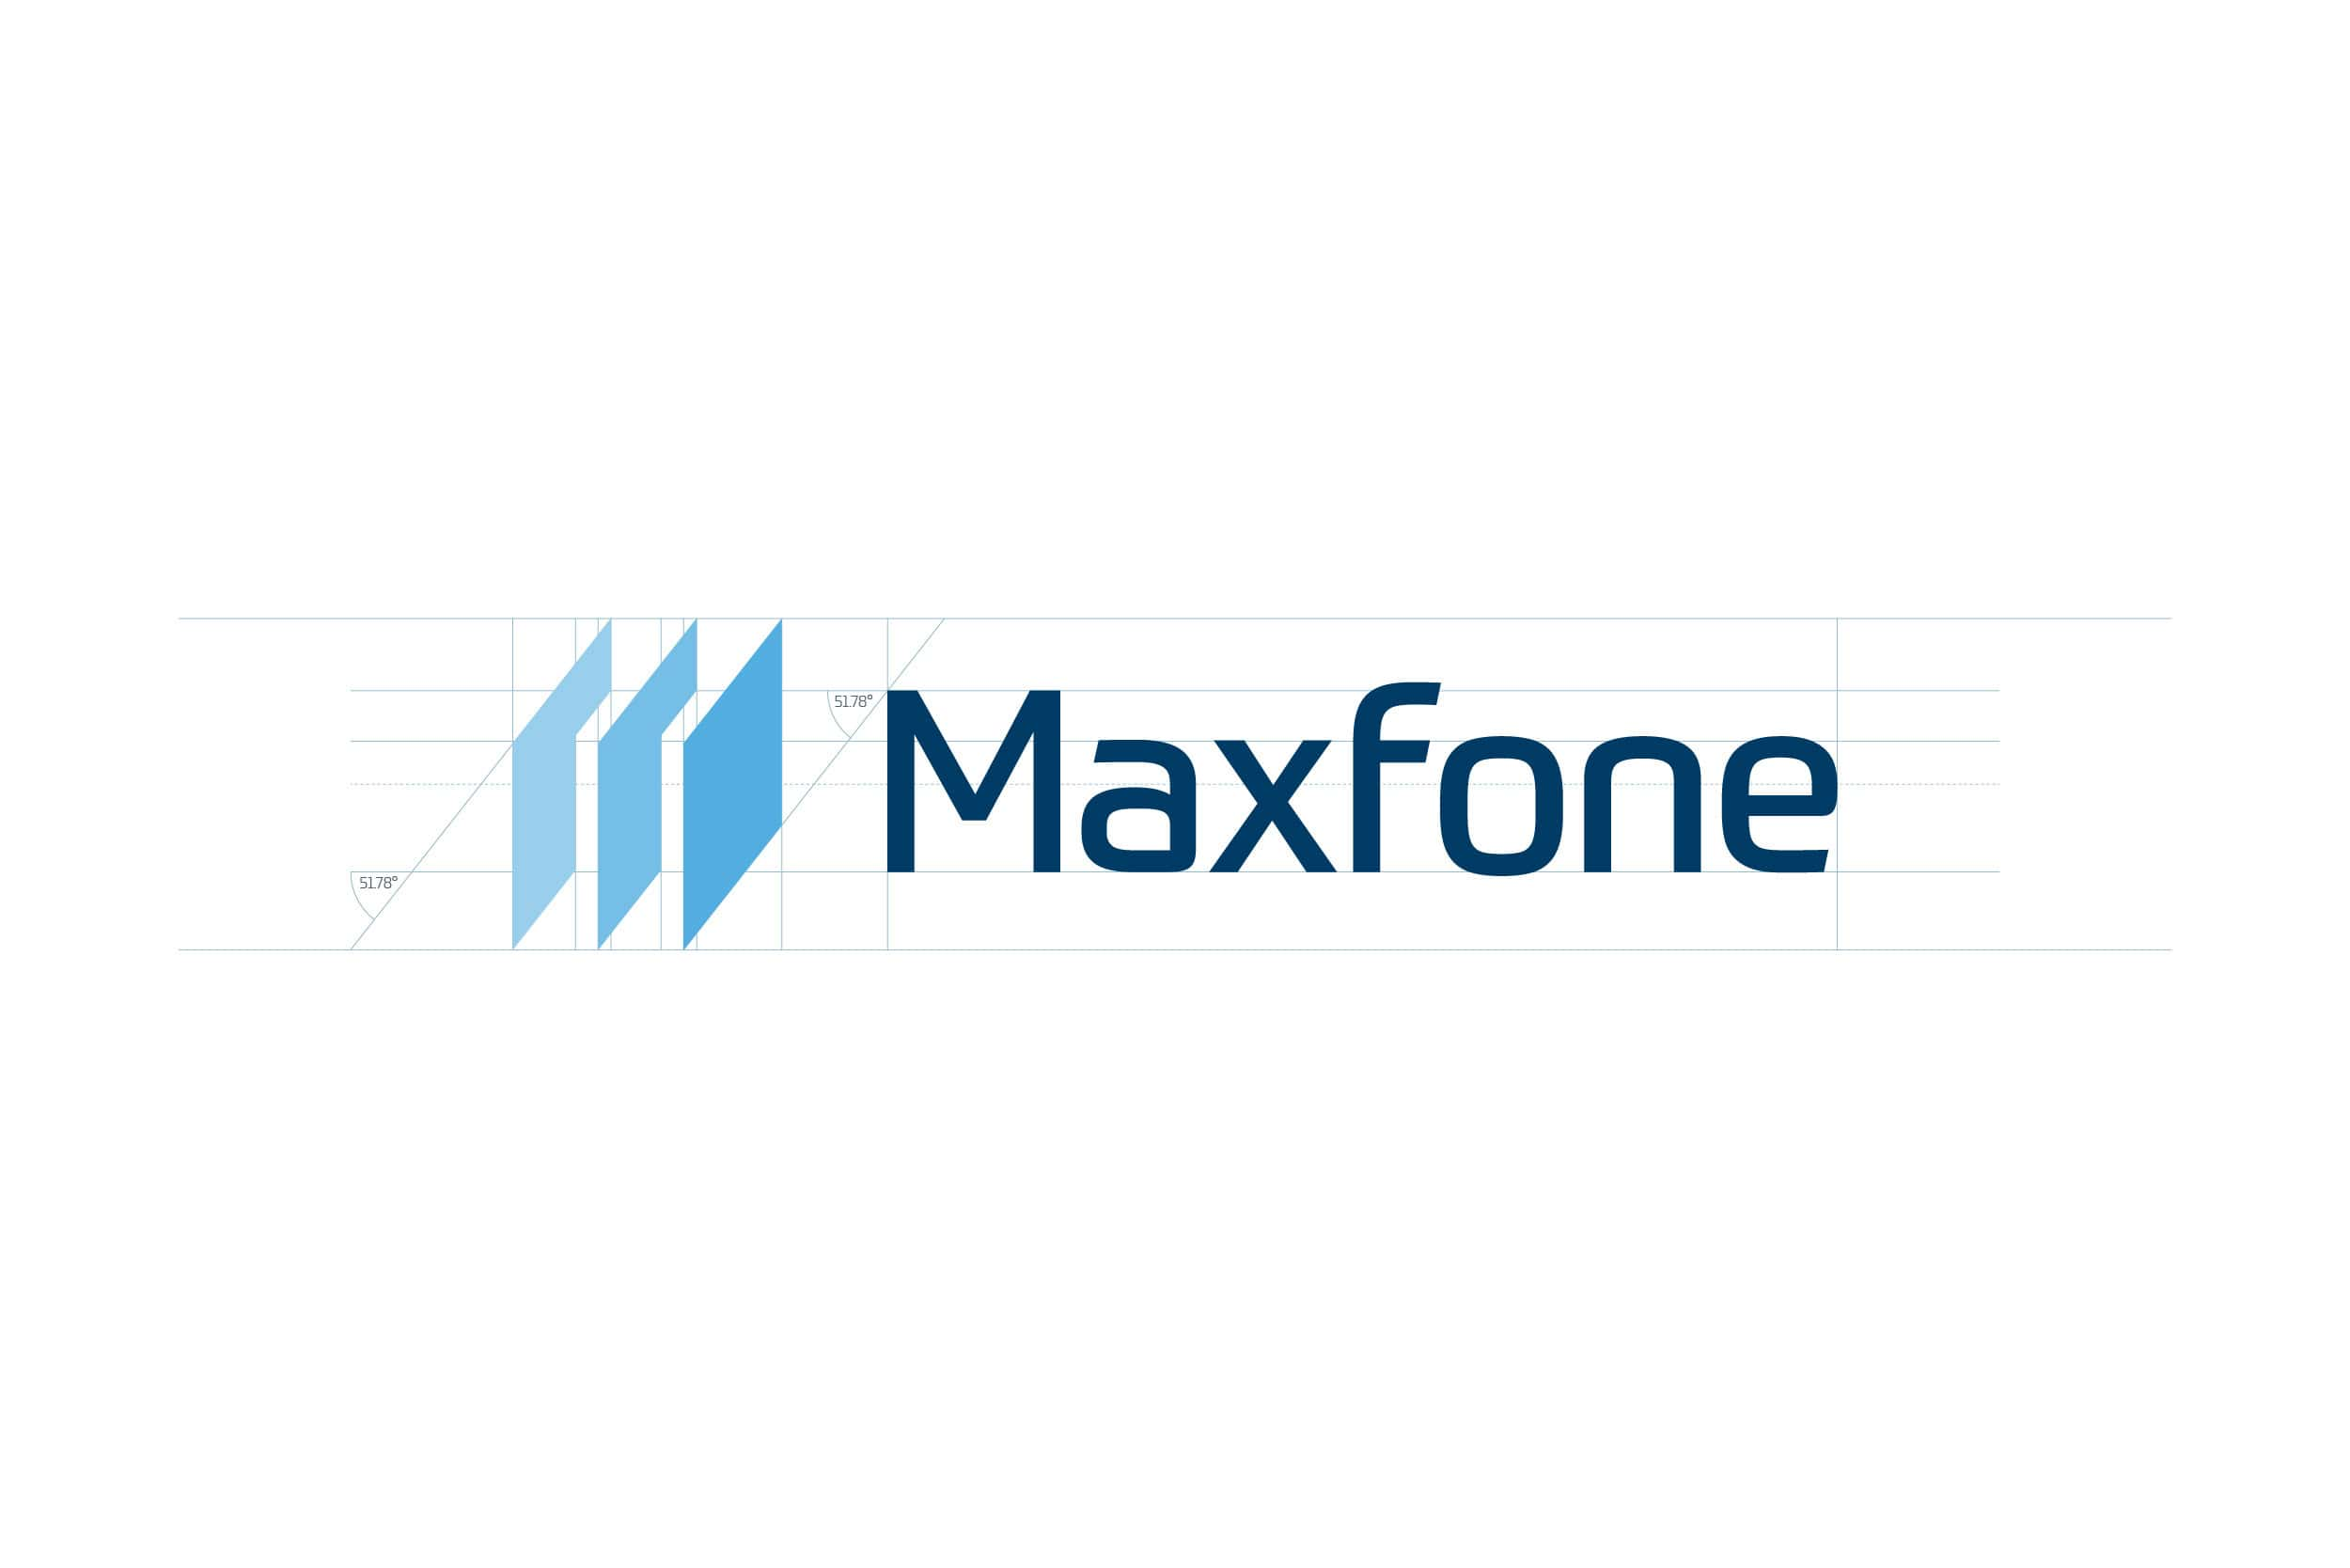 Maxfone lockup construction